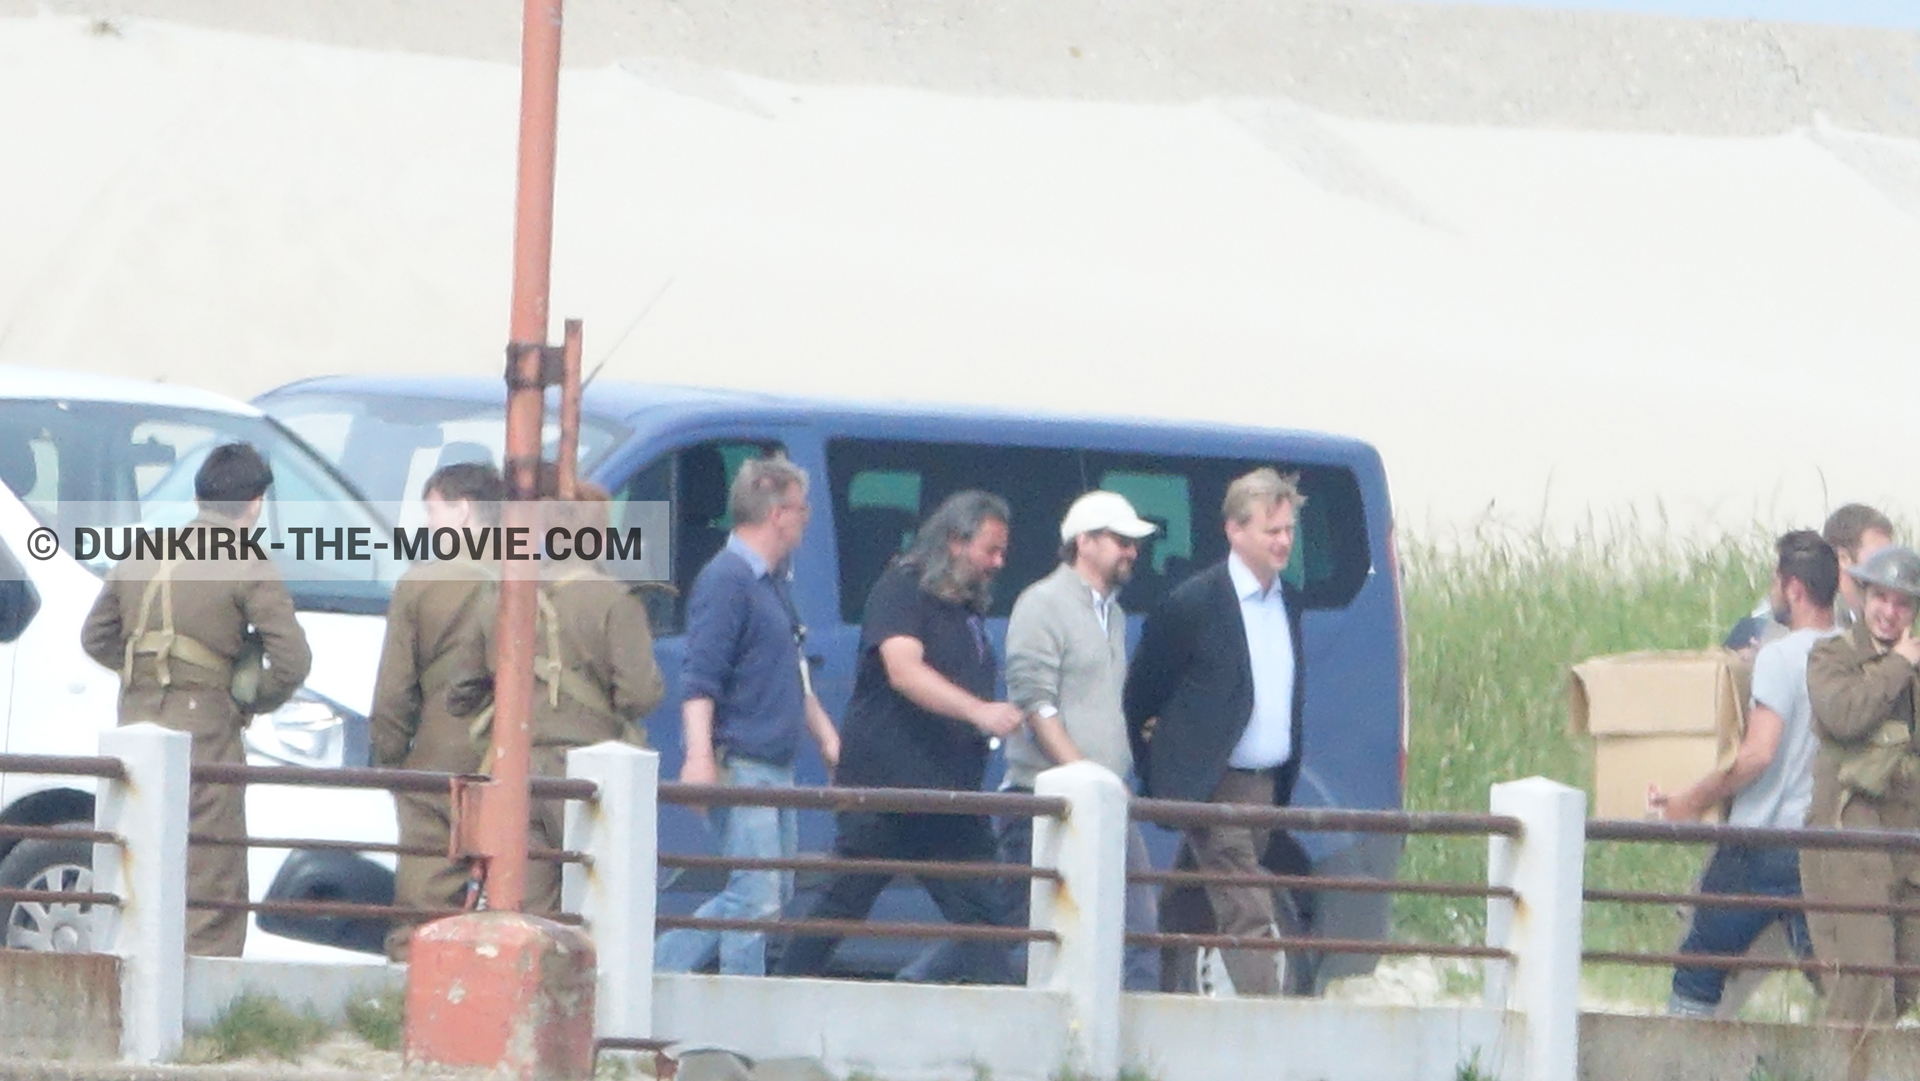 Picture with supernumeraries, Hoyte van Hoytema, Christopher Nolan,  from behind the scene of the Dunkirk movie by Nolan